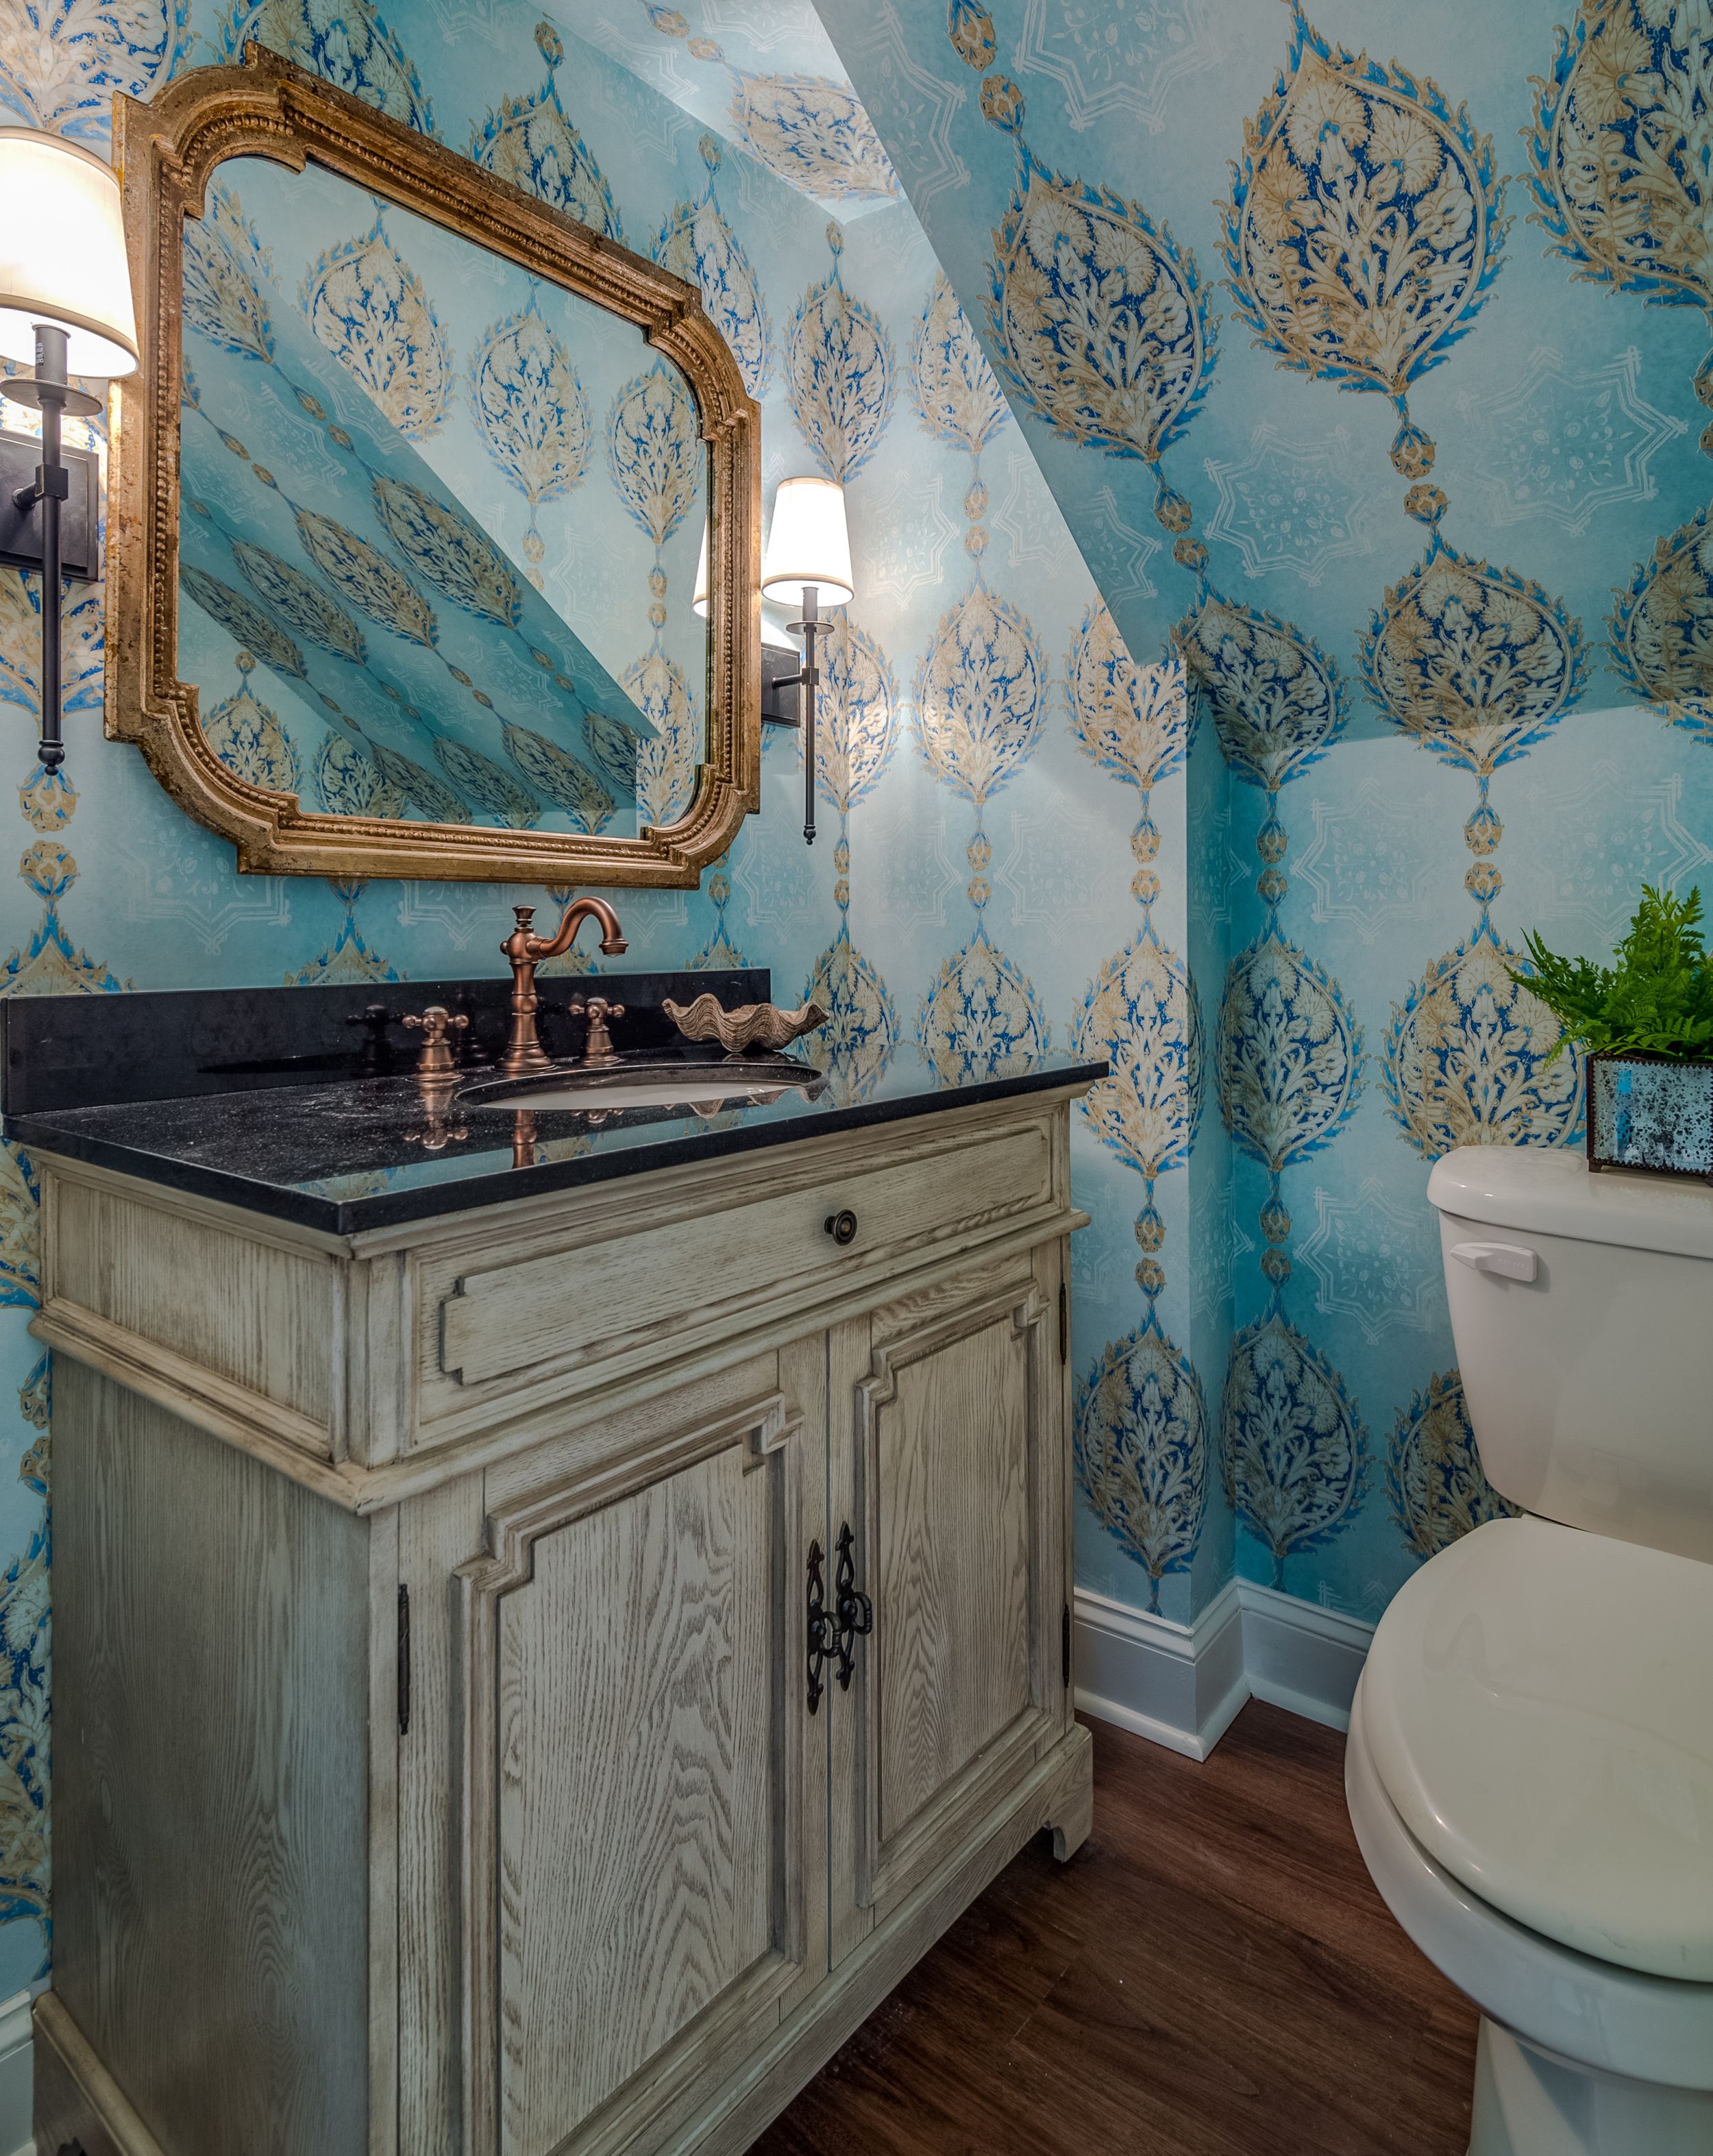 garden district new orleans interior designer old metairie powder room renovation interior designer .png